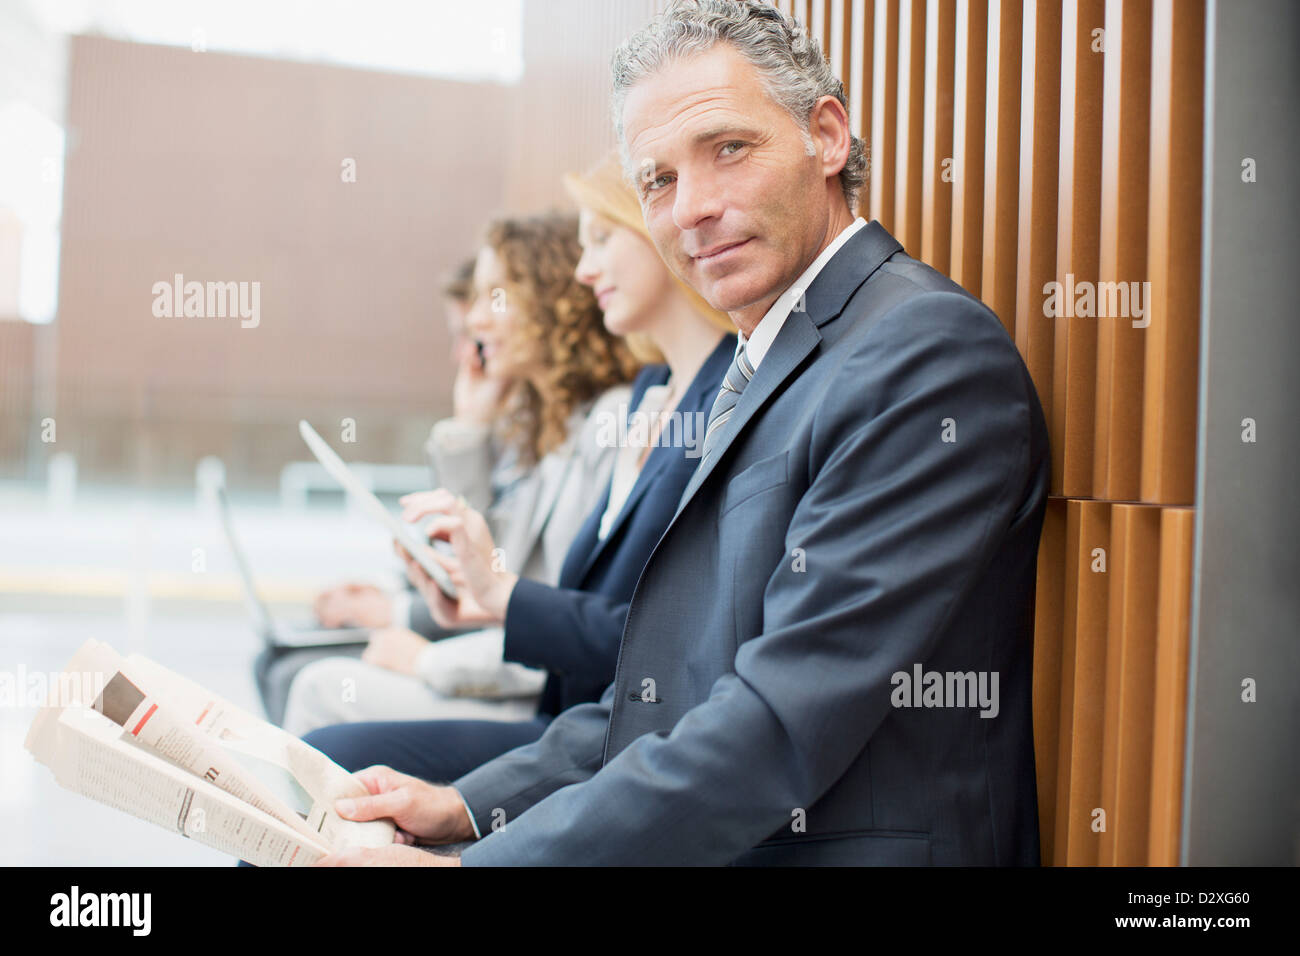 Portrait of confident businessman reading newspaper with co-workers in background - Stock Image